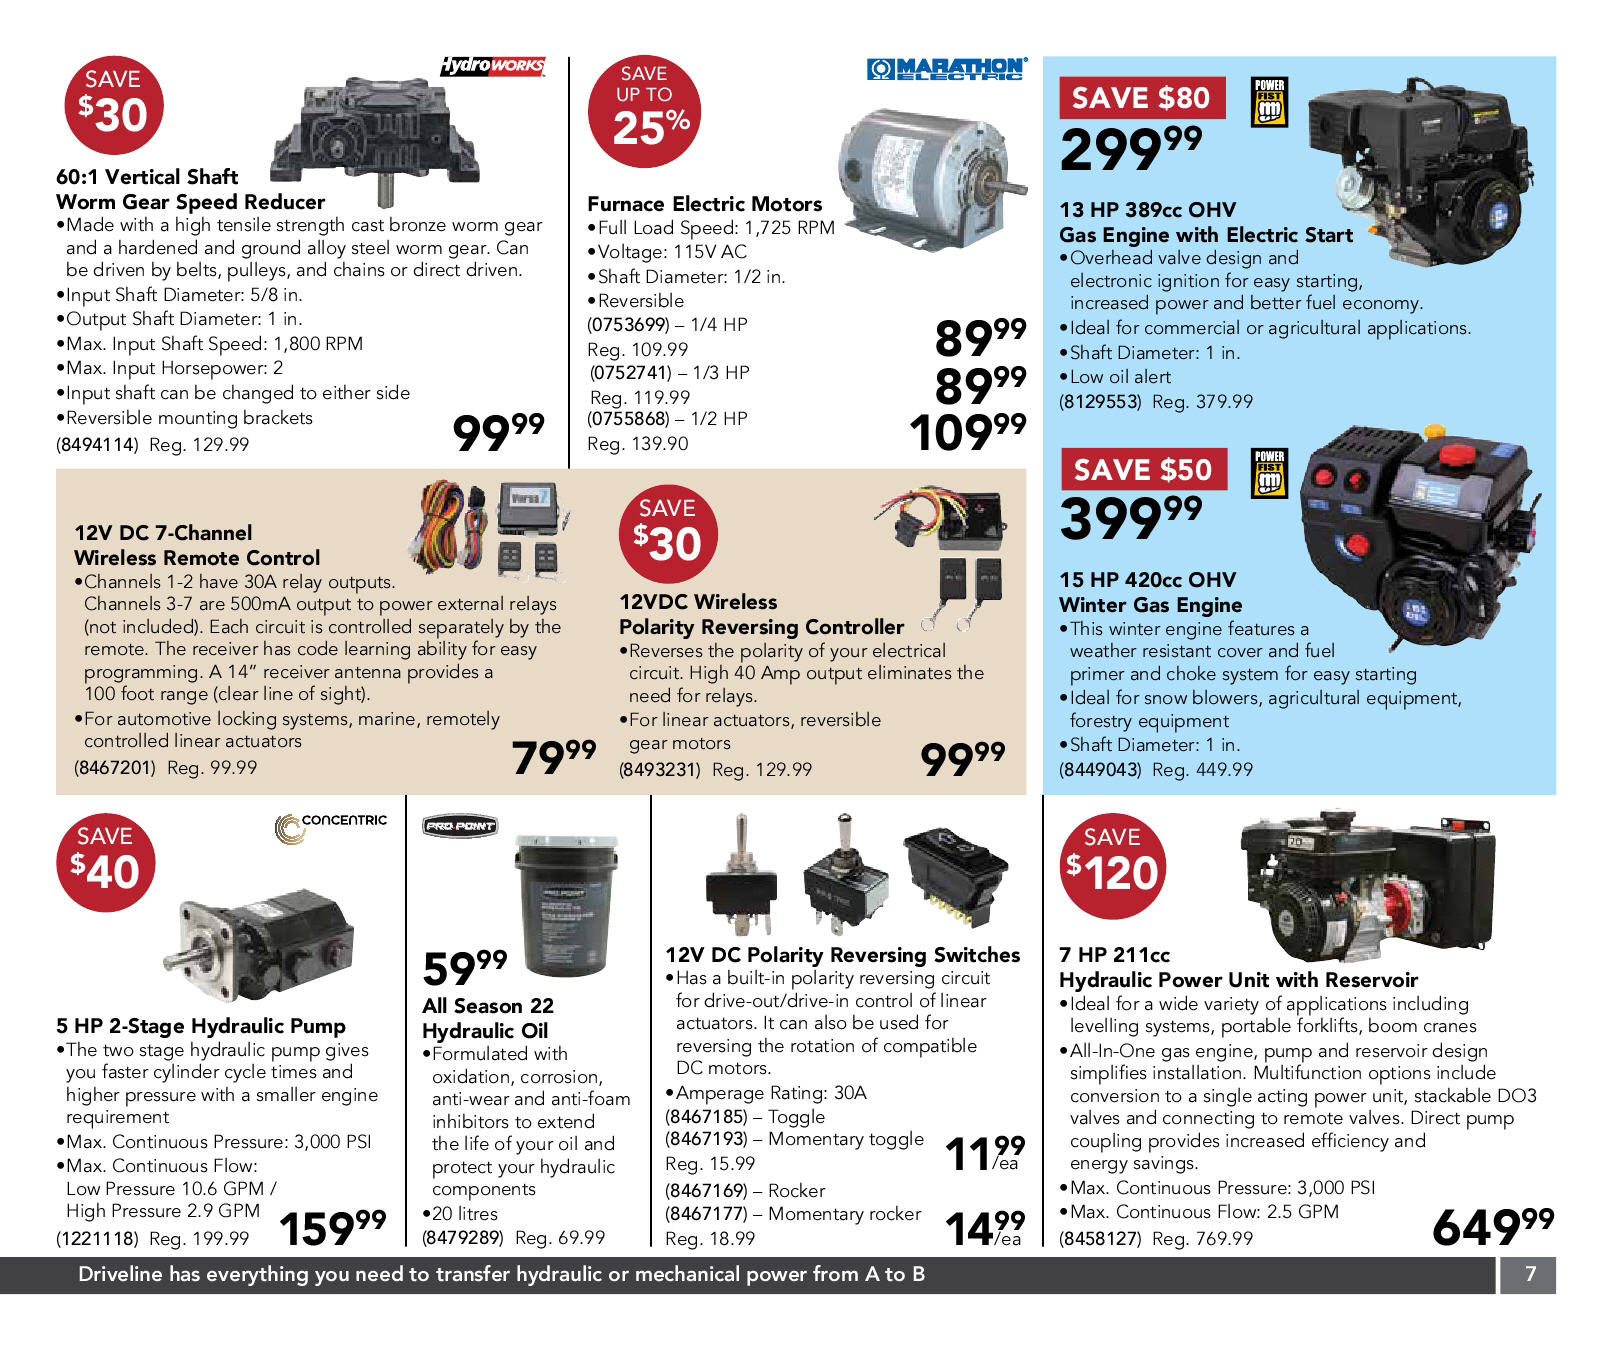 Princess Auto Weekly Flyer Gifts That Say Go Build Something Dc Shade Motors Can The Polarity Be Reversed With A Simple Switch Nov 4 16